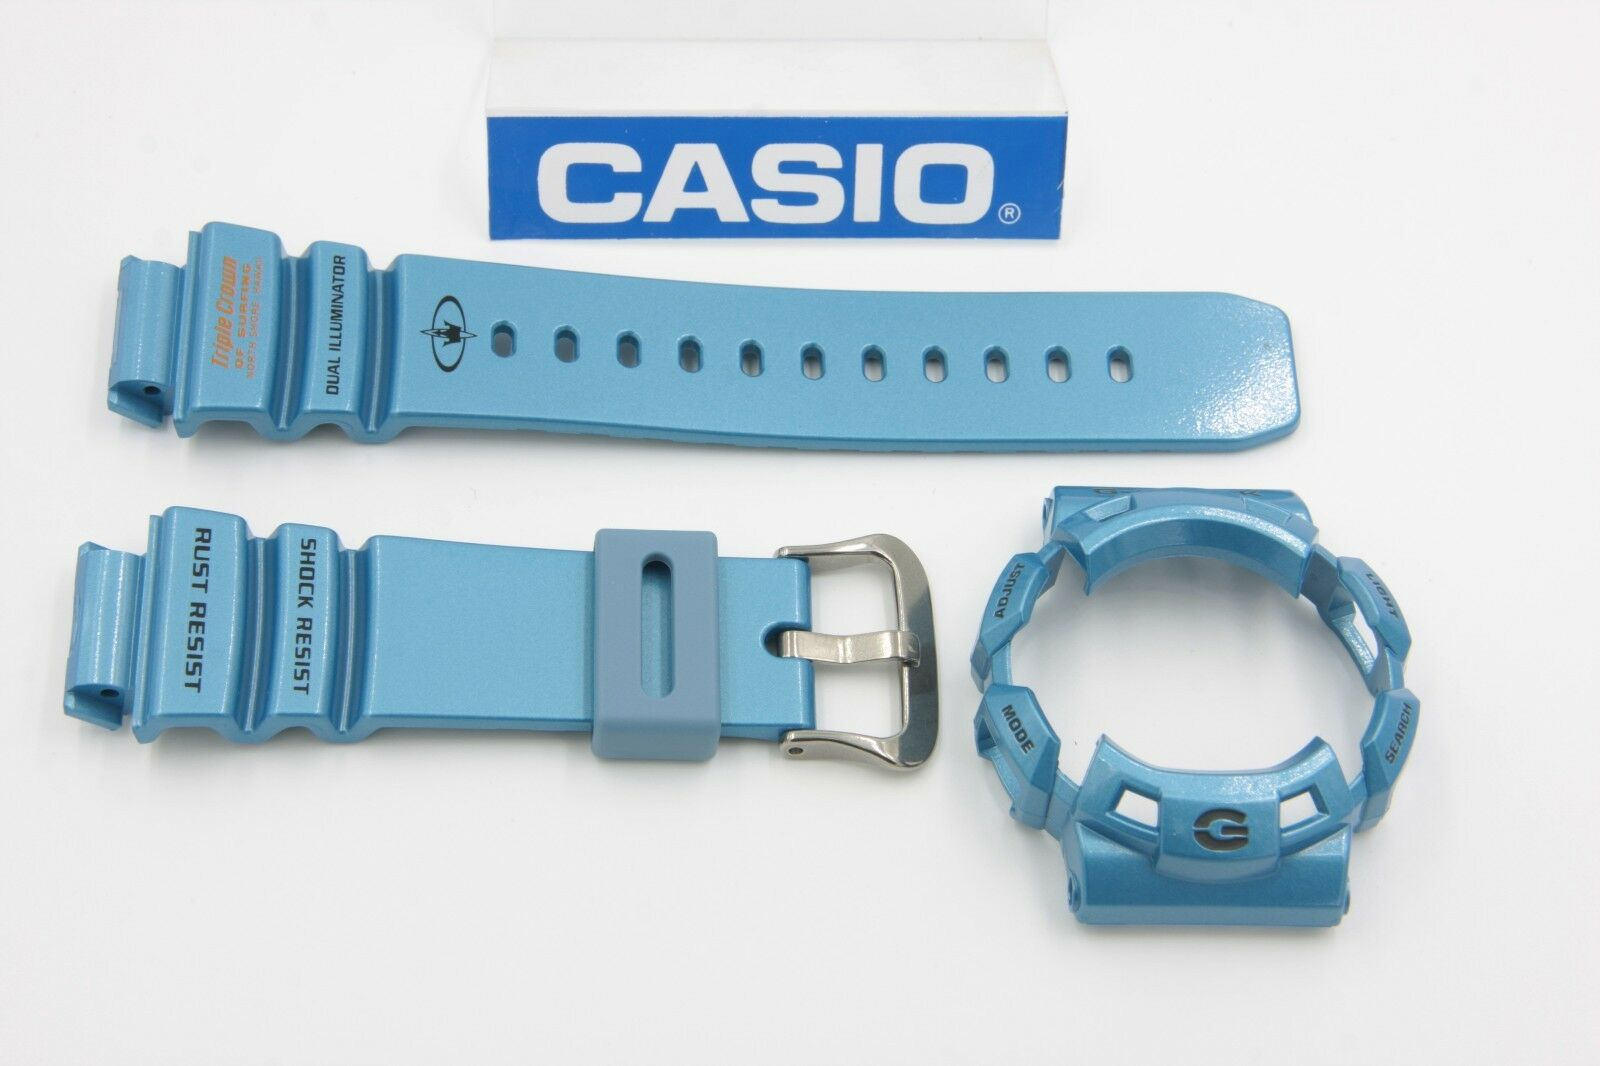 Original Casio G Shock Gulfman 9100tc 2 Glossy Blue Band Bezel Gax 100a 7adr Origina 1 Of 1only Available